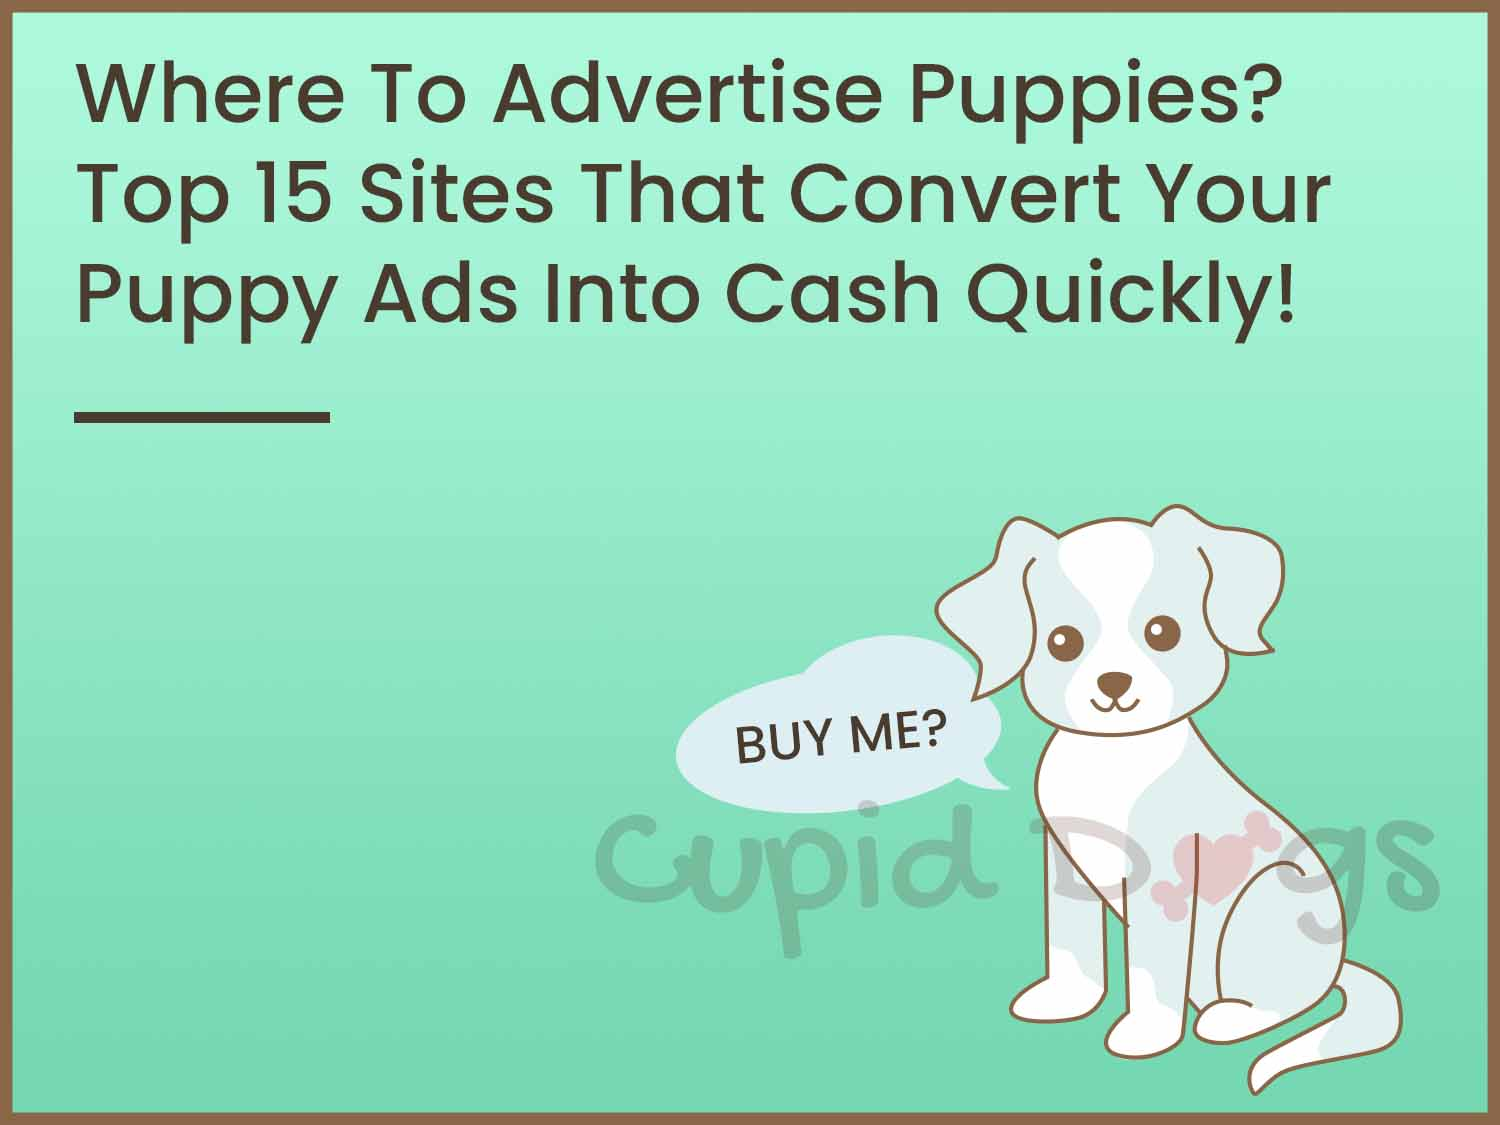 Where To Advertise Puppies? Top 15 Sites That Convert Your Puppy Ads Into Cash Quickly!